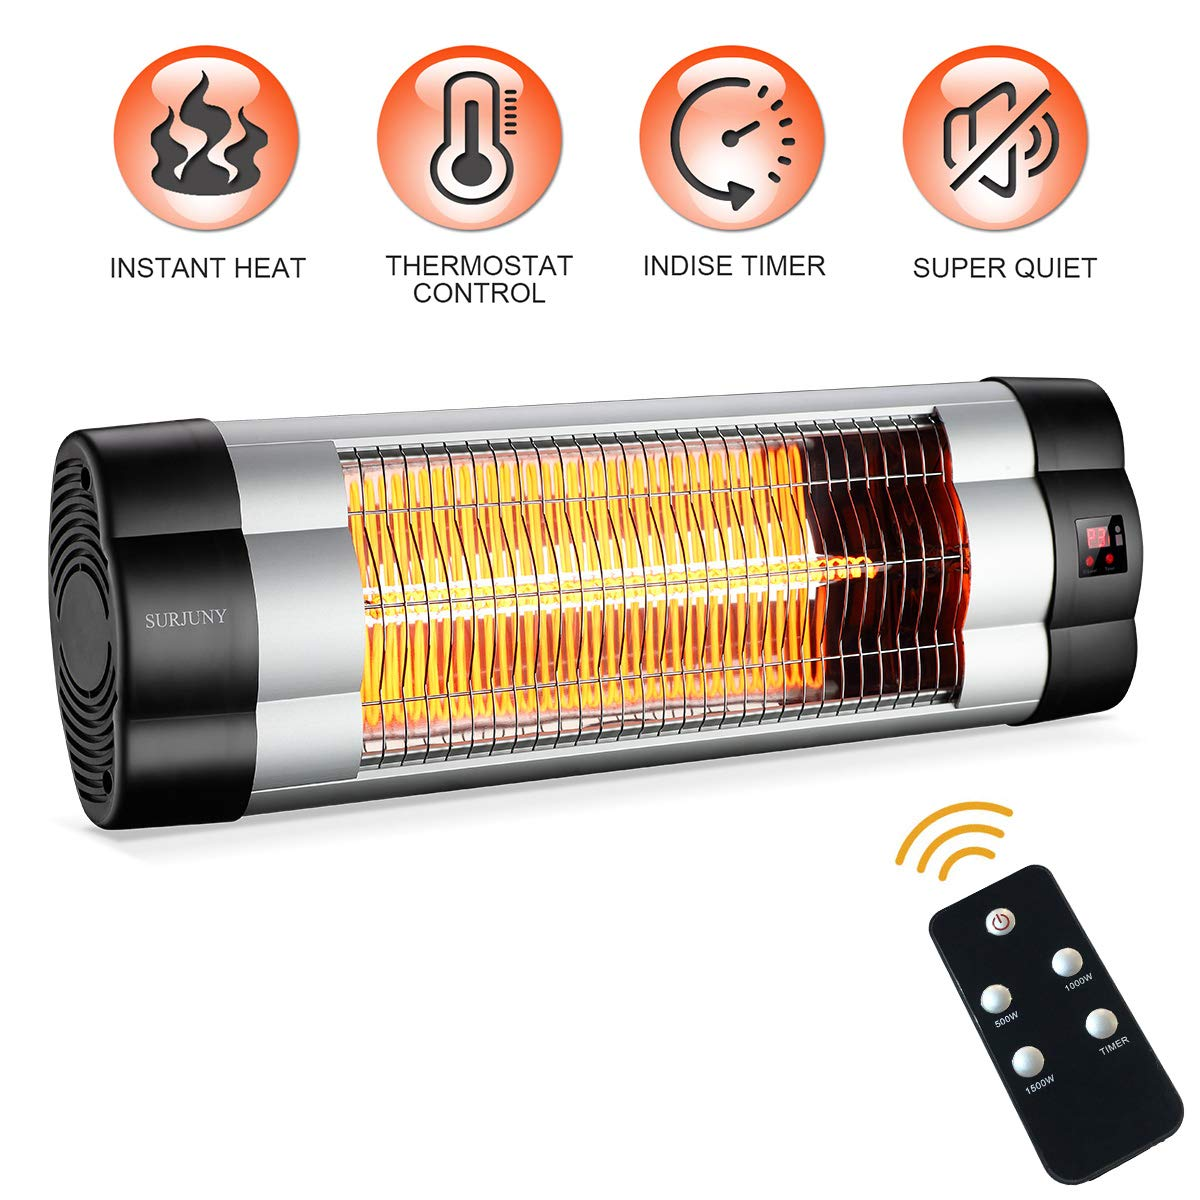 110V RADIANT CEILING HEATER PANEL with REMOTE CONTROL 500W INFRARED ELECTRIC